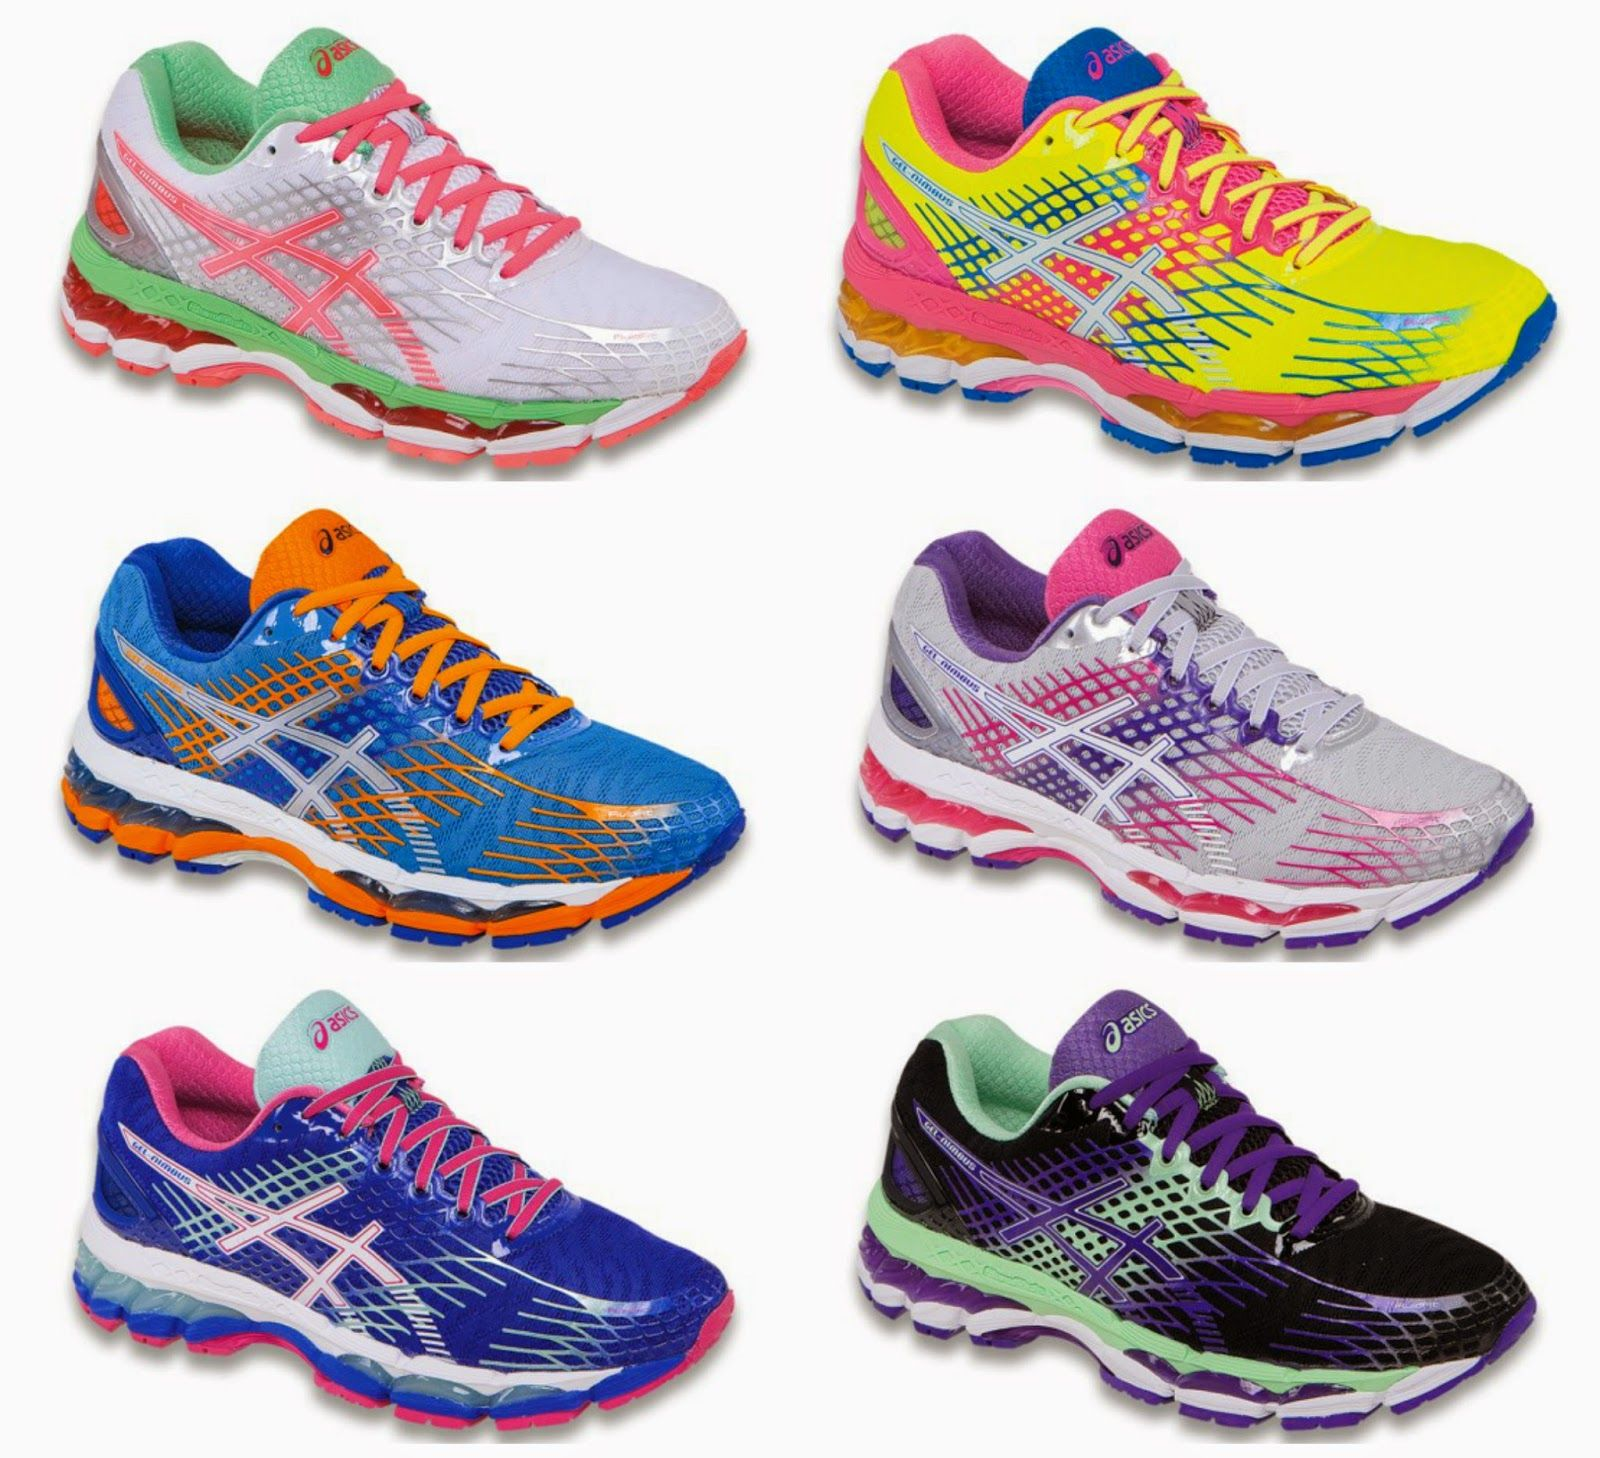 Win Gear 17 I Review Asics Wine Run A Nimbus Gel And For CCzvxq